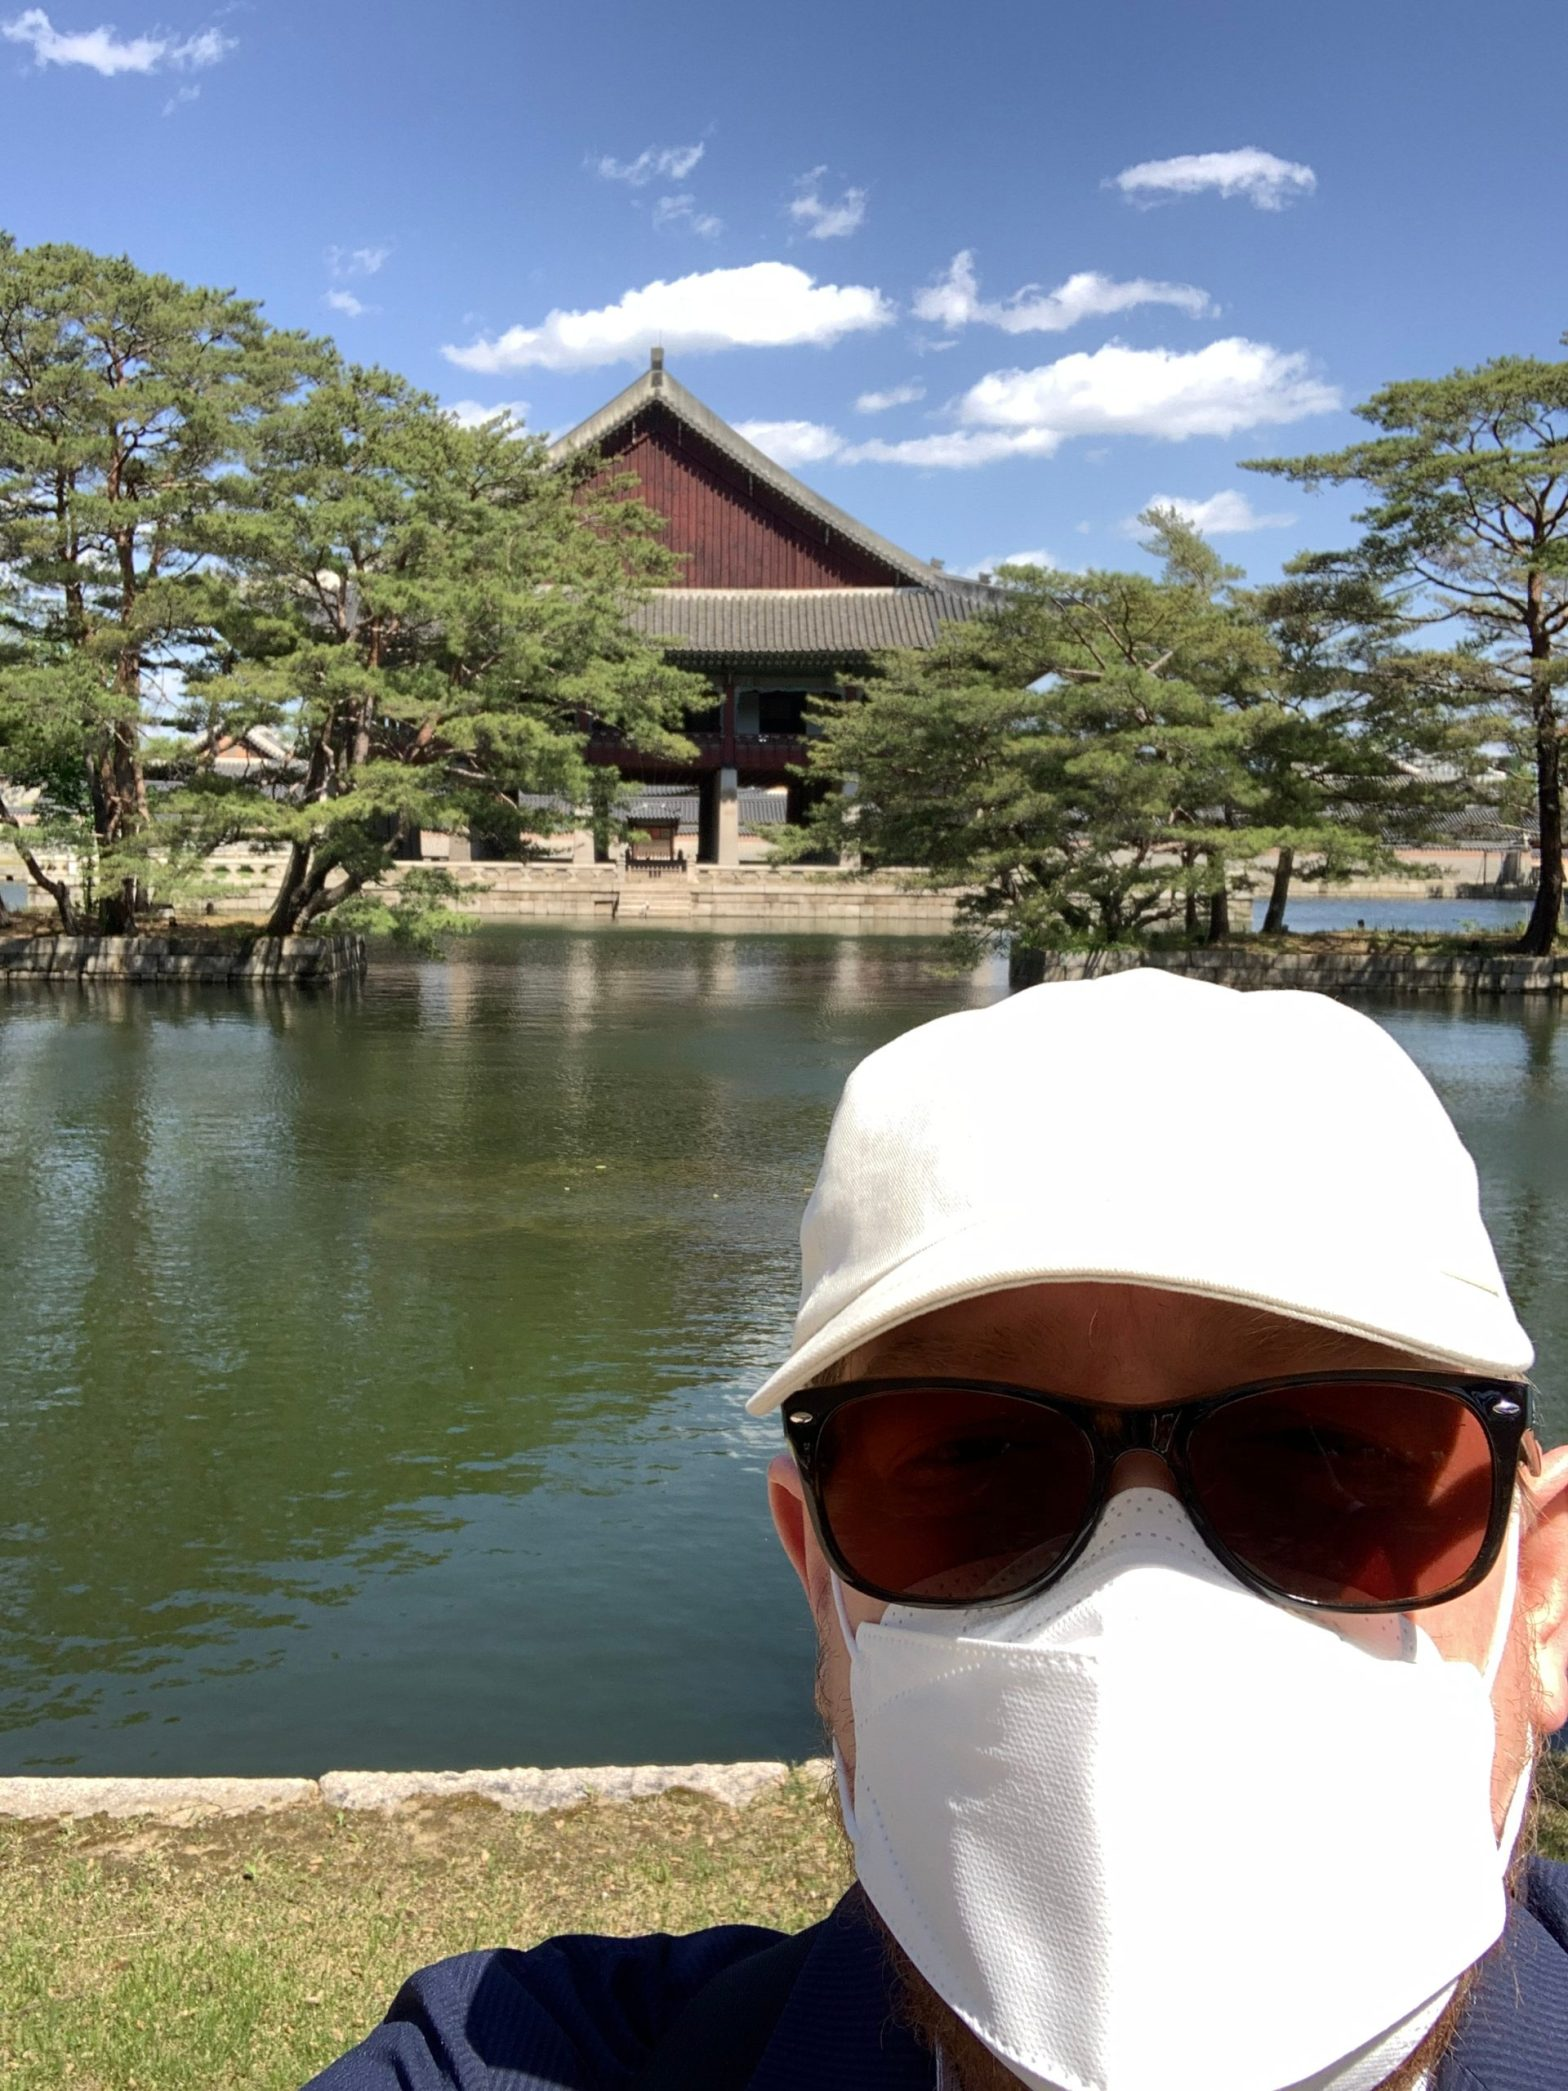 Paul in Seoul in front of a temple across the water